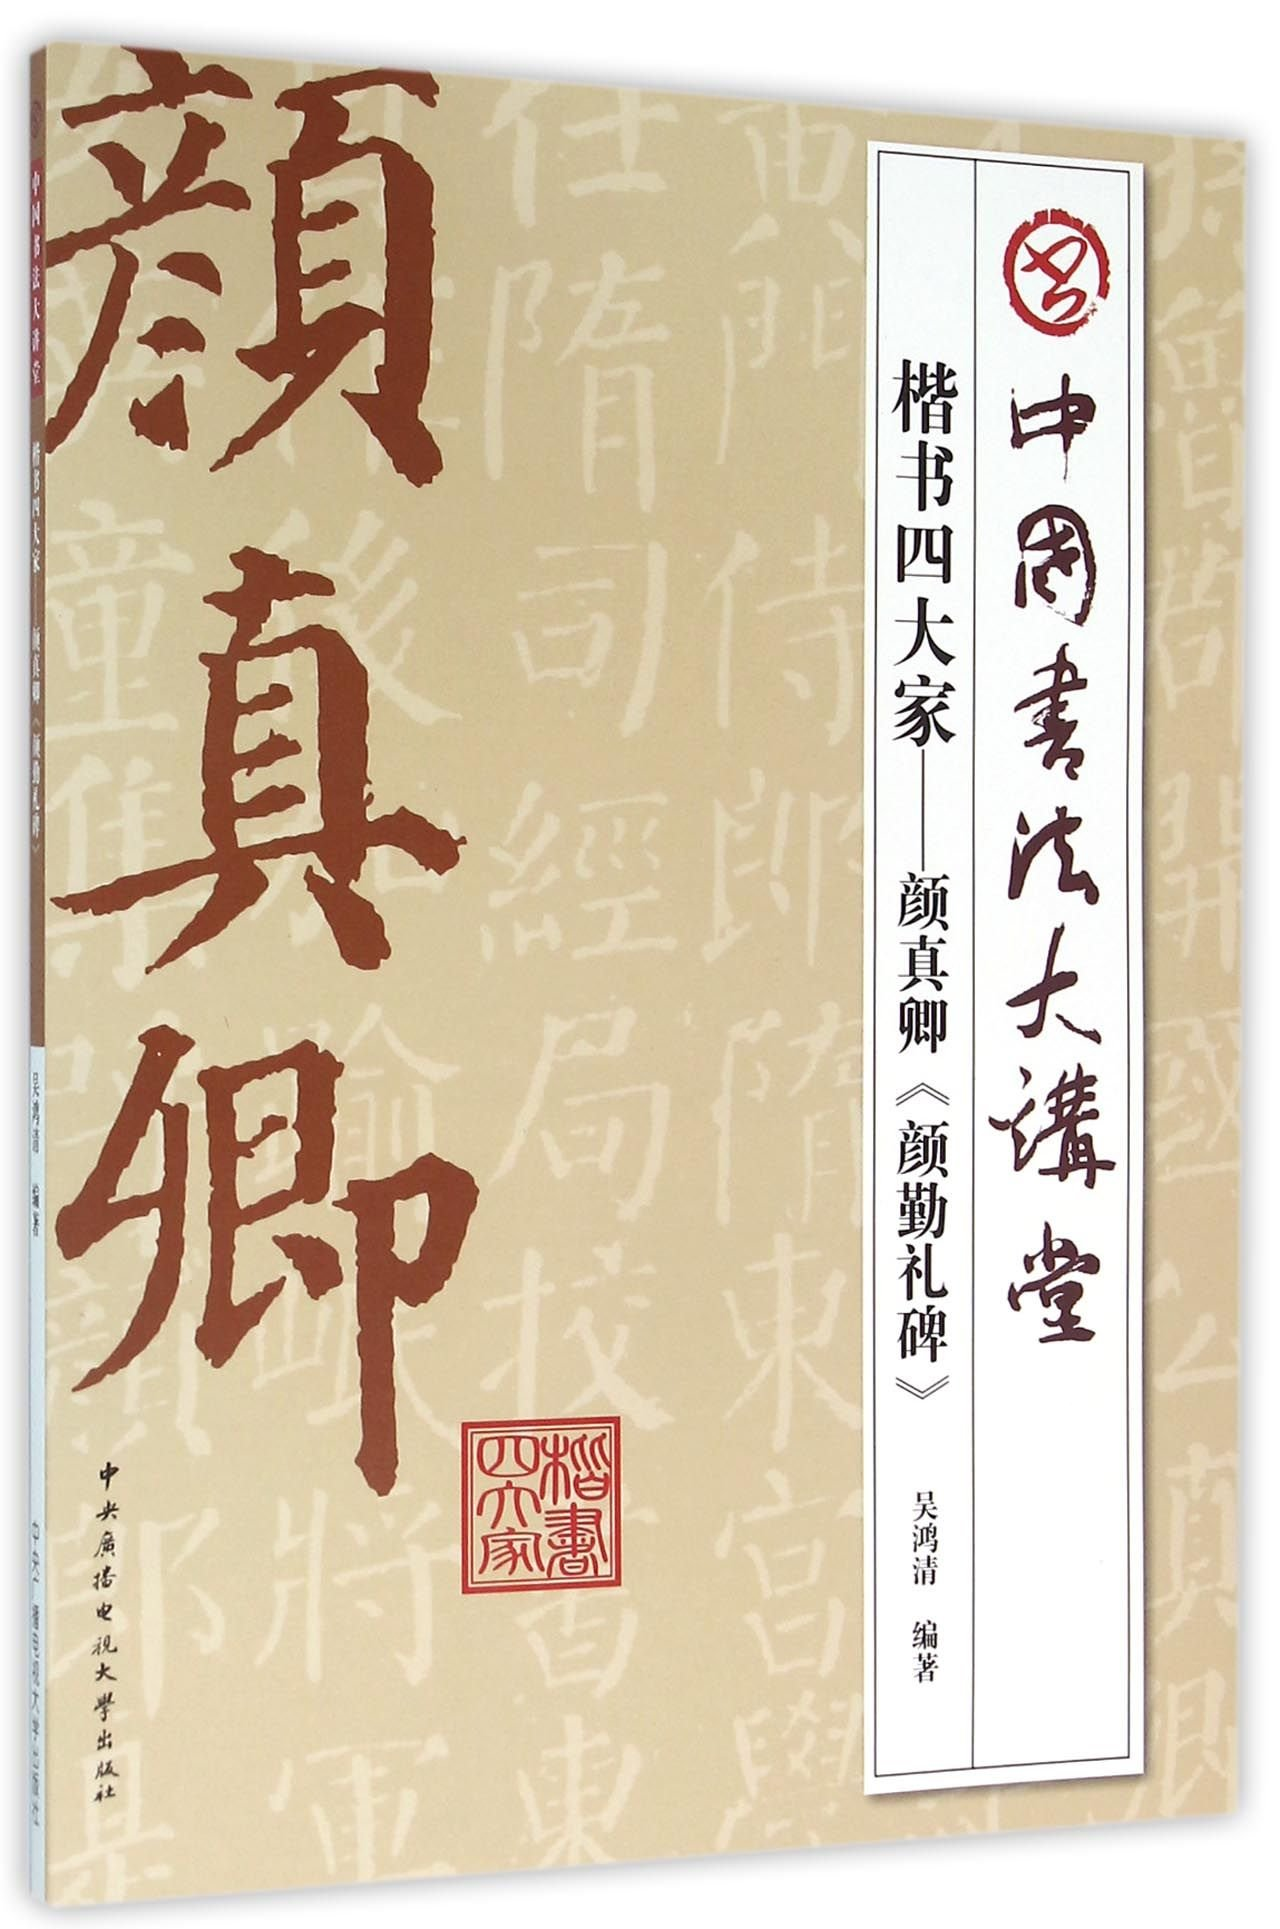 Download Four Masters of the Regular Script - A Tombstone Set up by Yan Zhenqing to Commemorate His Great Grandfather (Chinese Edition) PDF